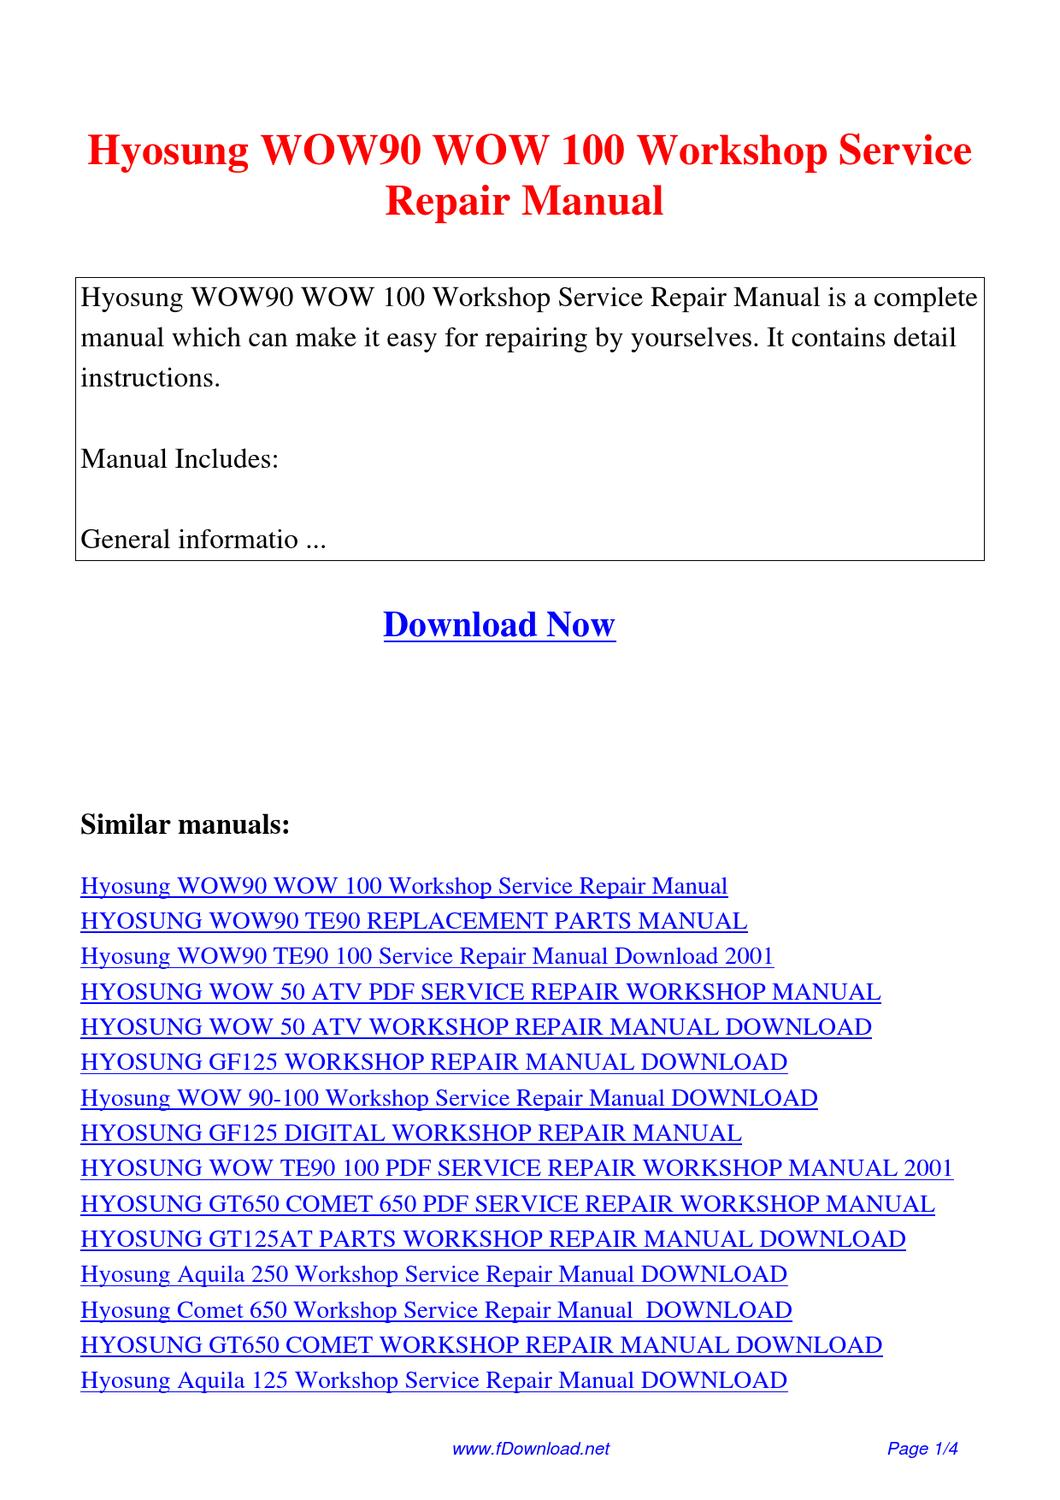 Hyosung Wow90 Wow 100 Workshop Service Repair Manual By Fu